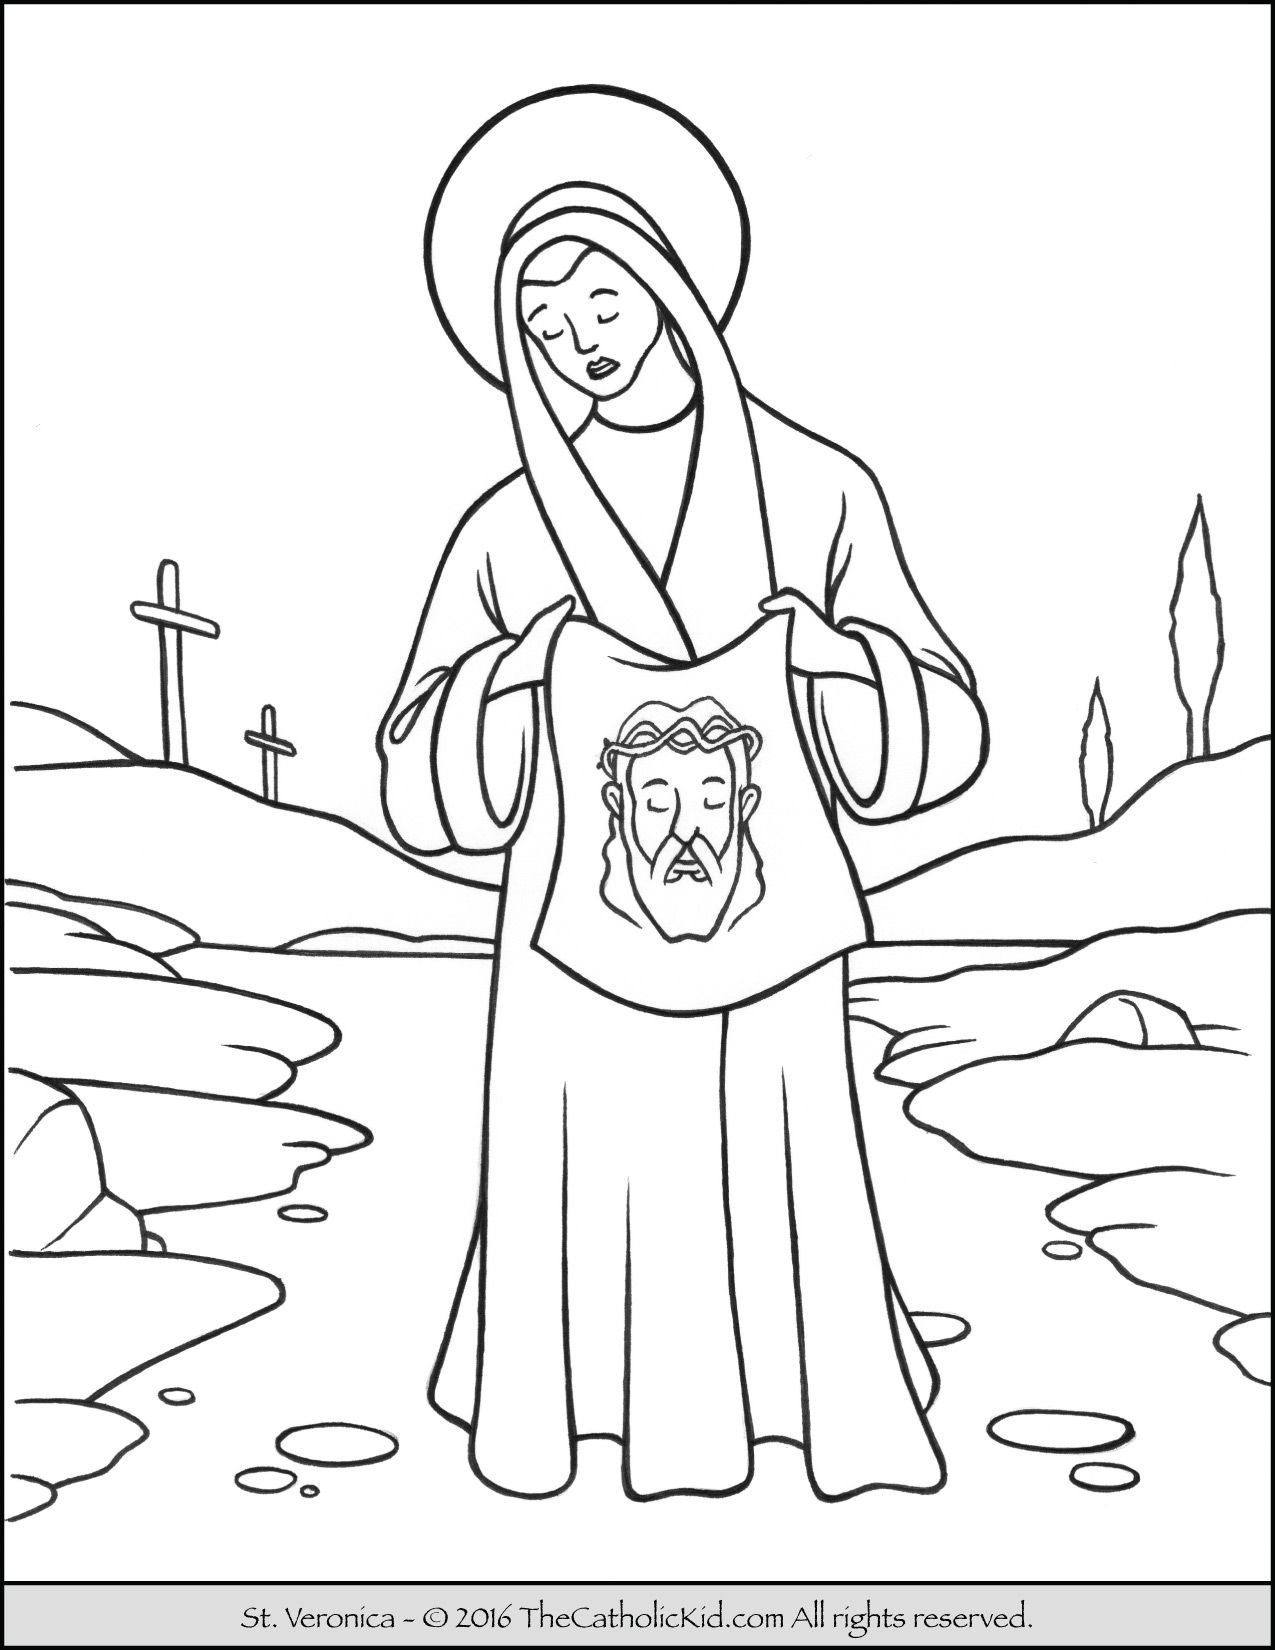 Saint Veronica Coloring Page The Catholic Kid St Veronica